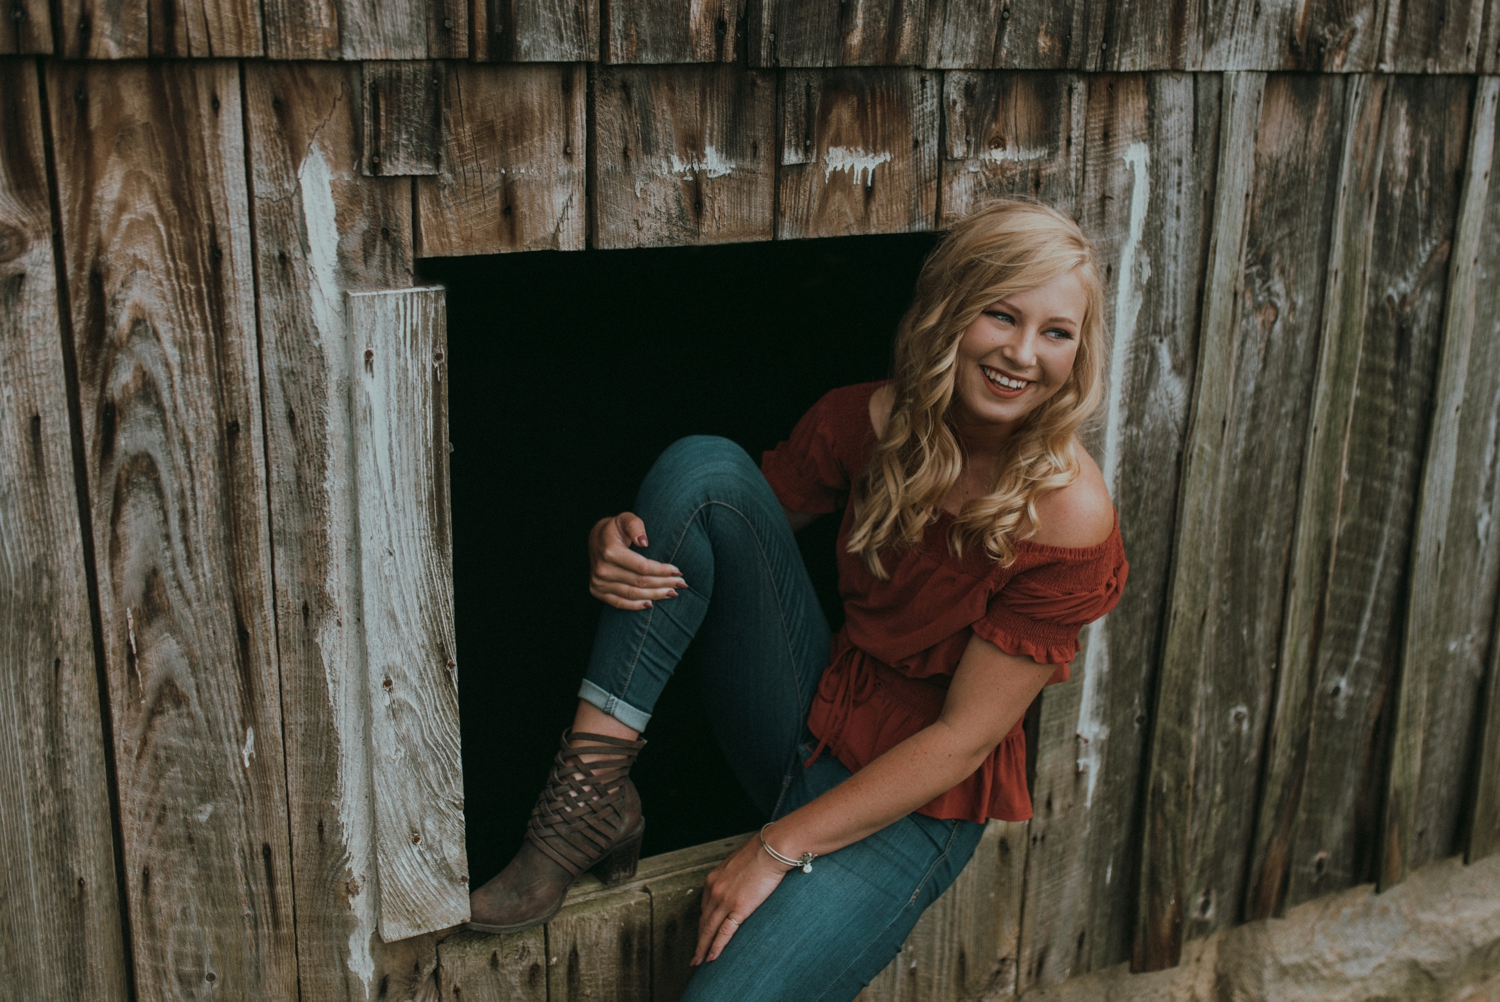 Kyleigh, Clarion Area High School Class of 2019 - Whitling